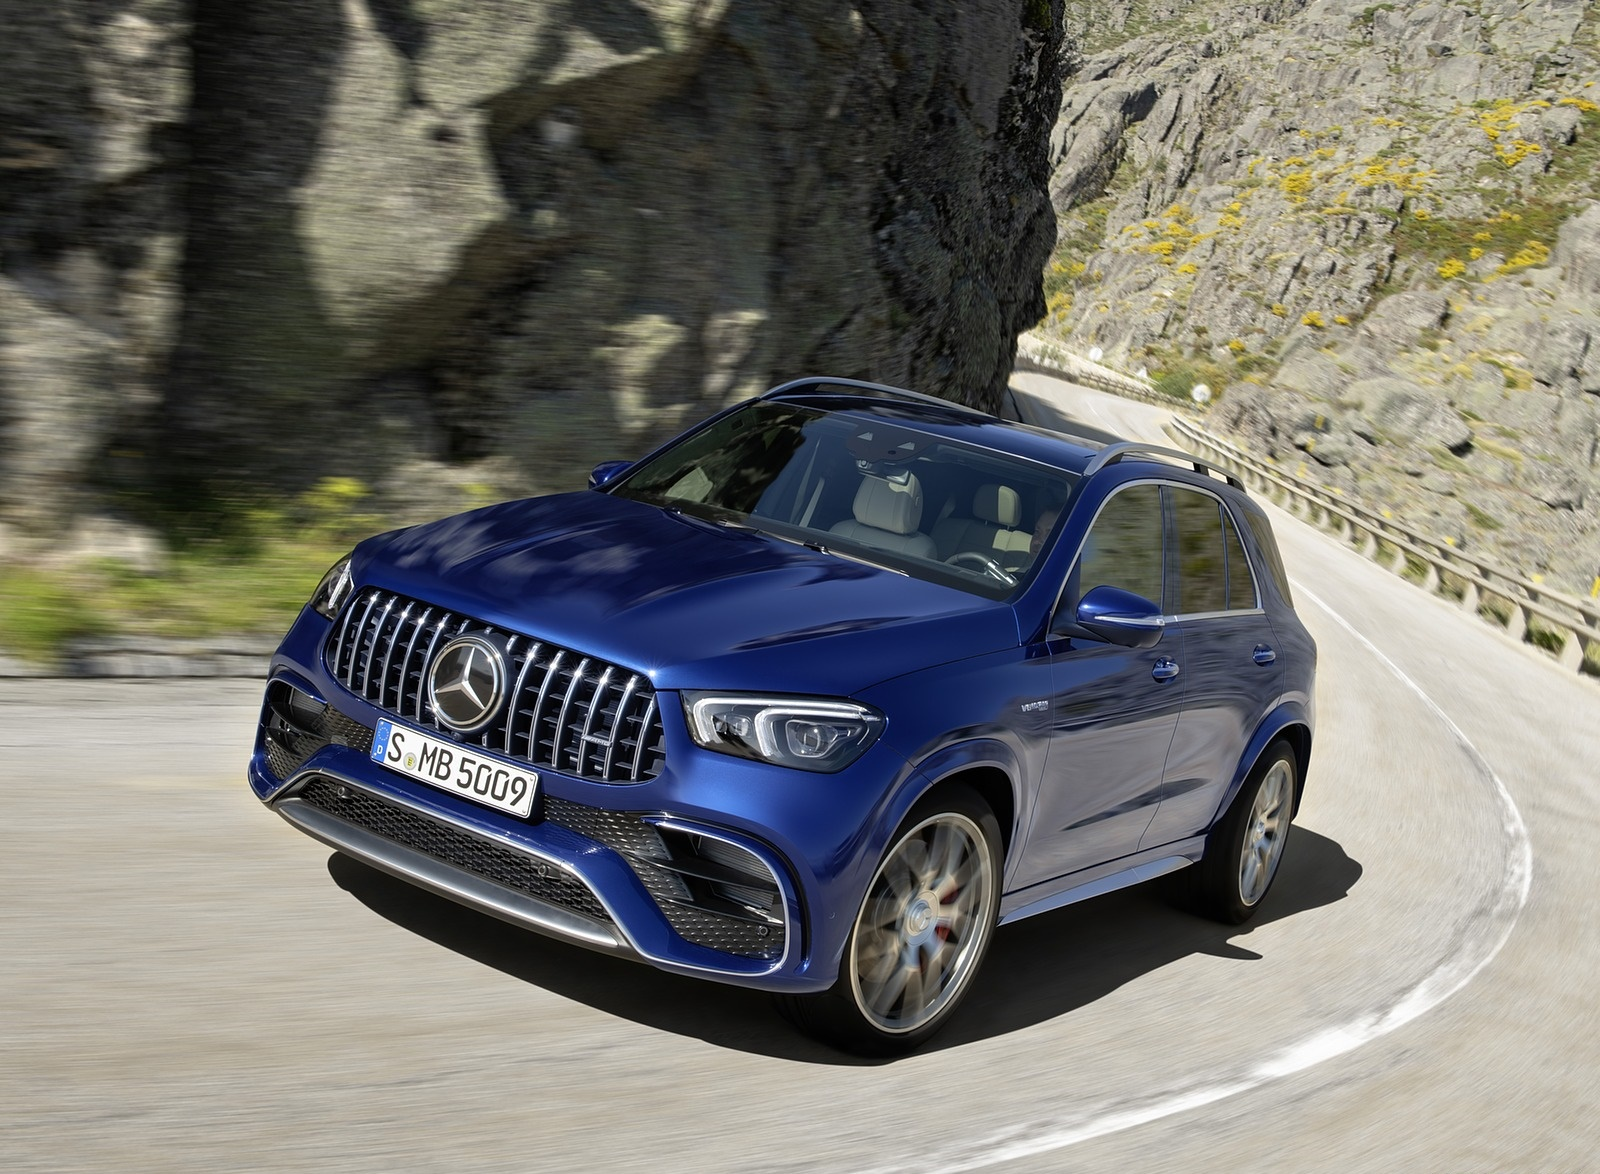 2021 Mercedes-AMG GLE 63 S 4MATIC Front Three-Quarter Wallpapers (6)